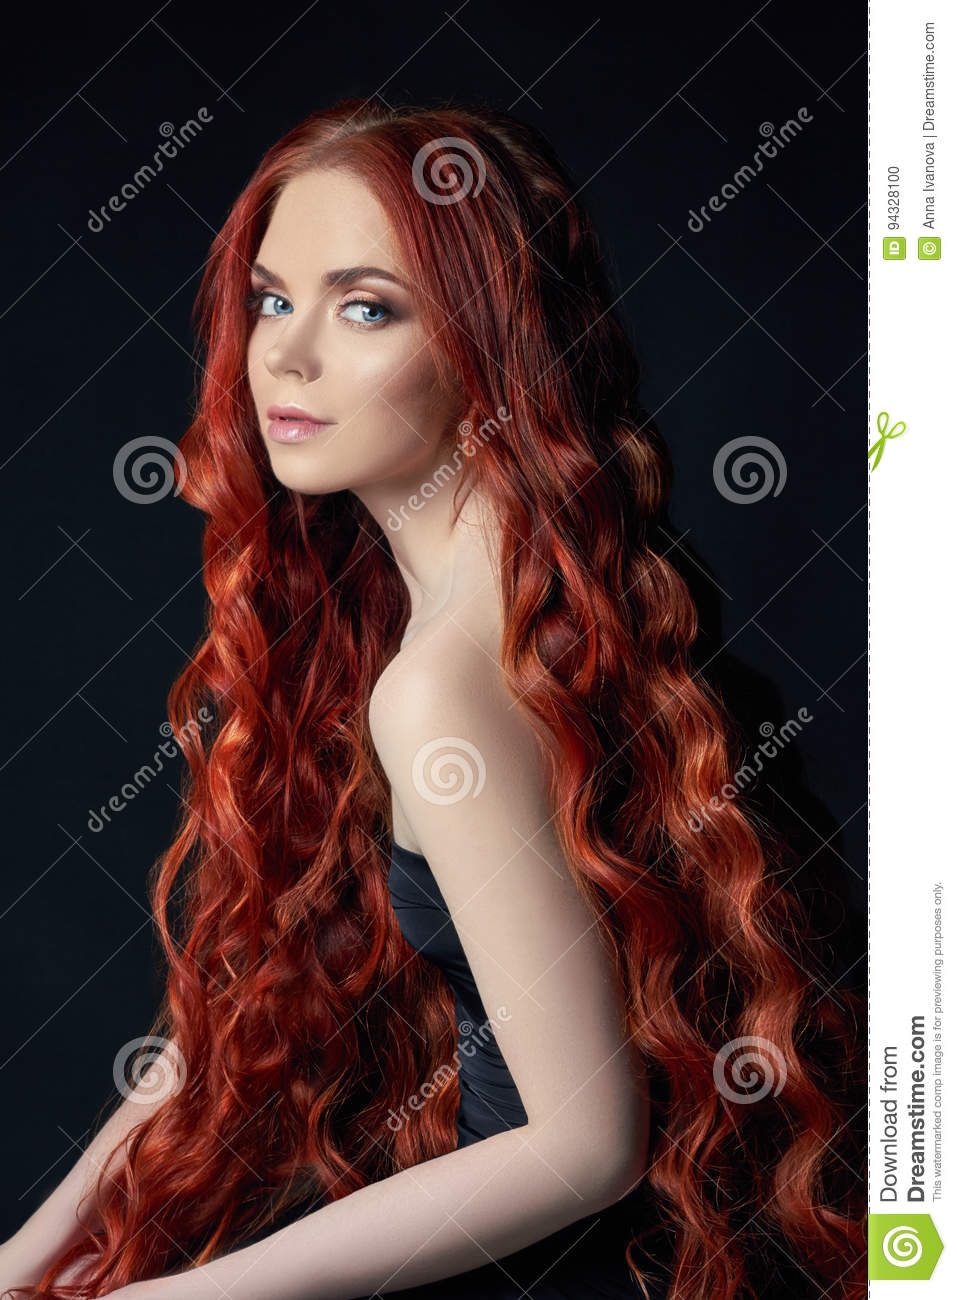 beautiful redhead girl with long hair. perfect woman portrait on